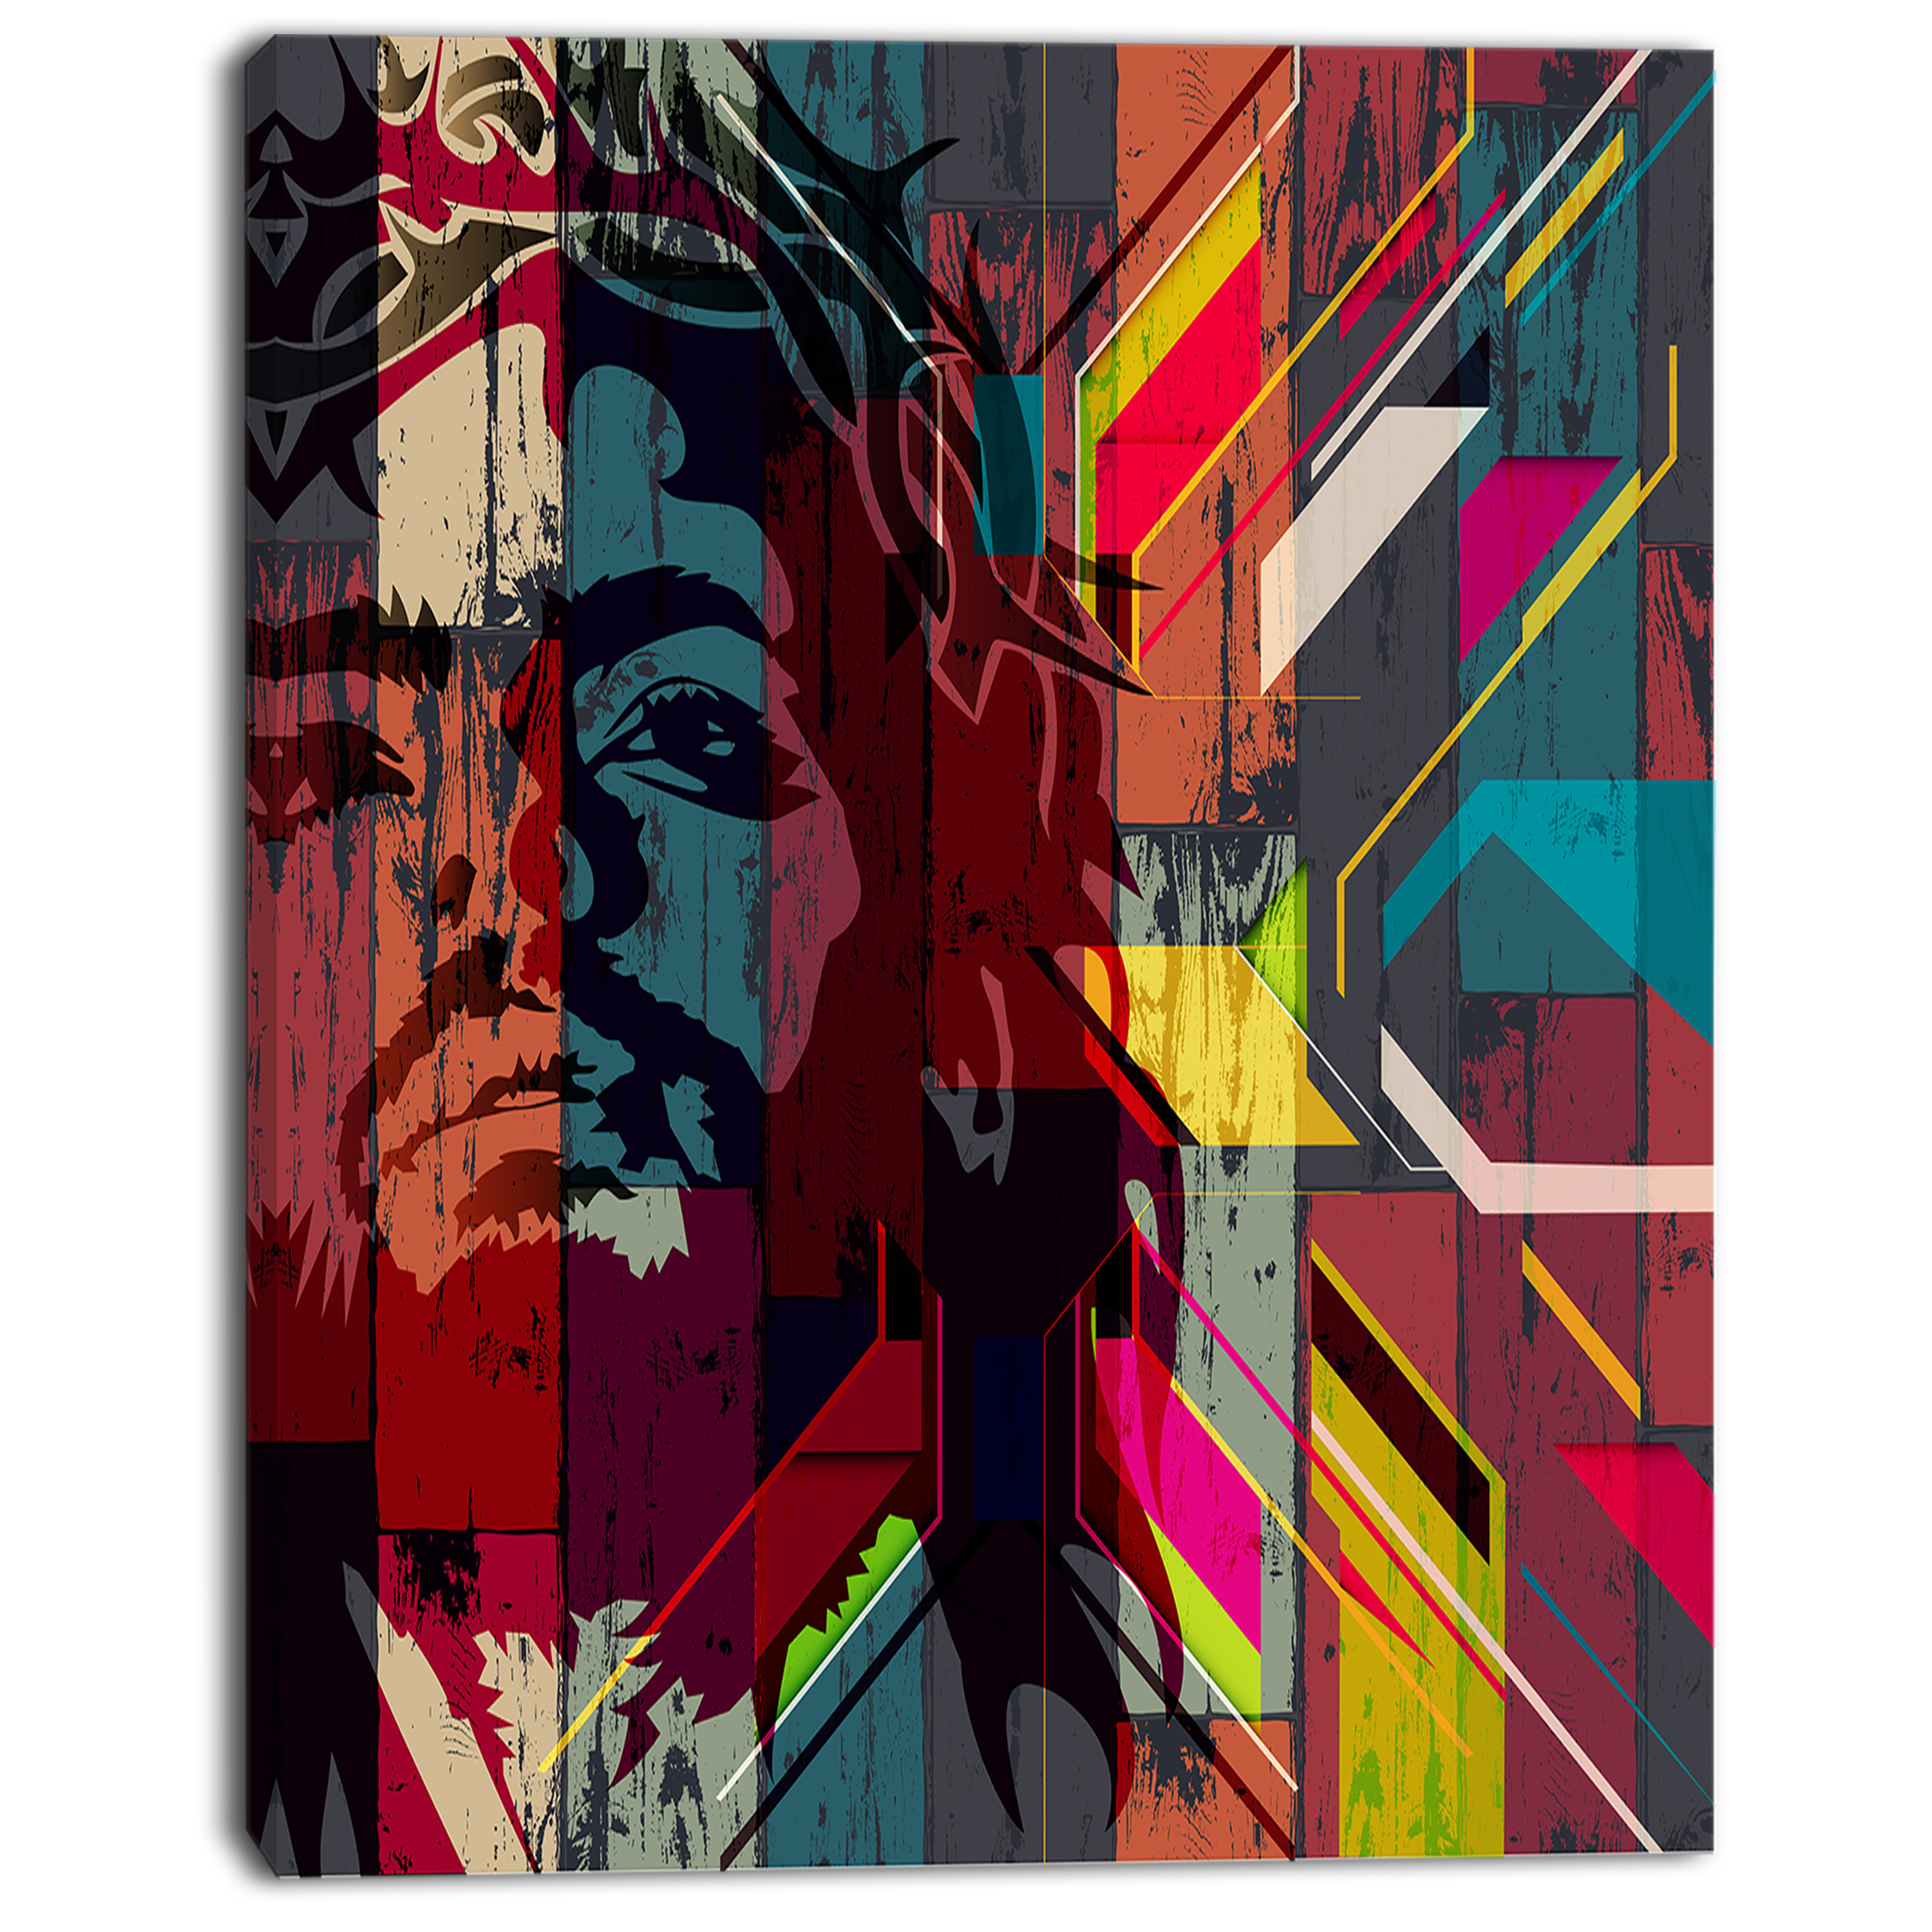 Jesus over Abstract Wooden Design - Large Abstract Canvas Art - image 3 de 3